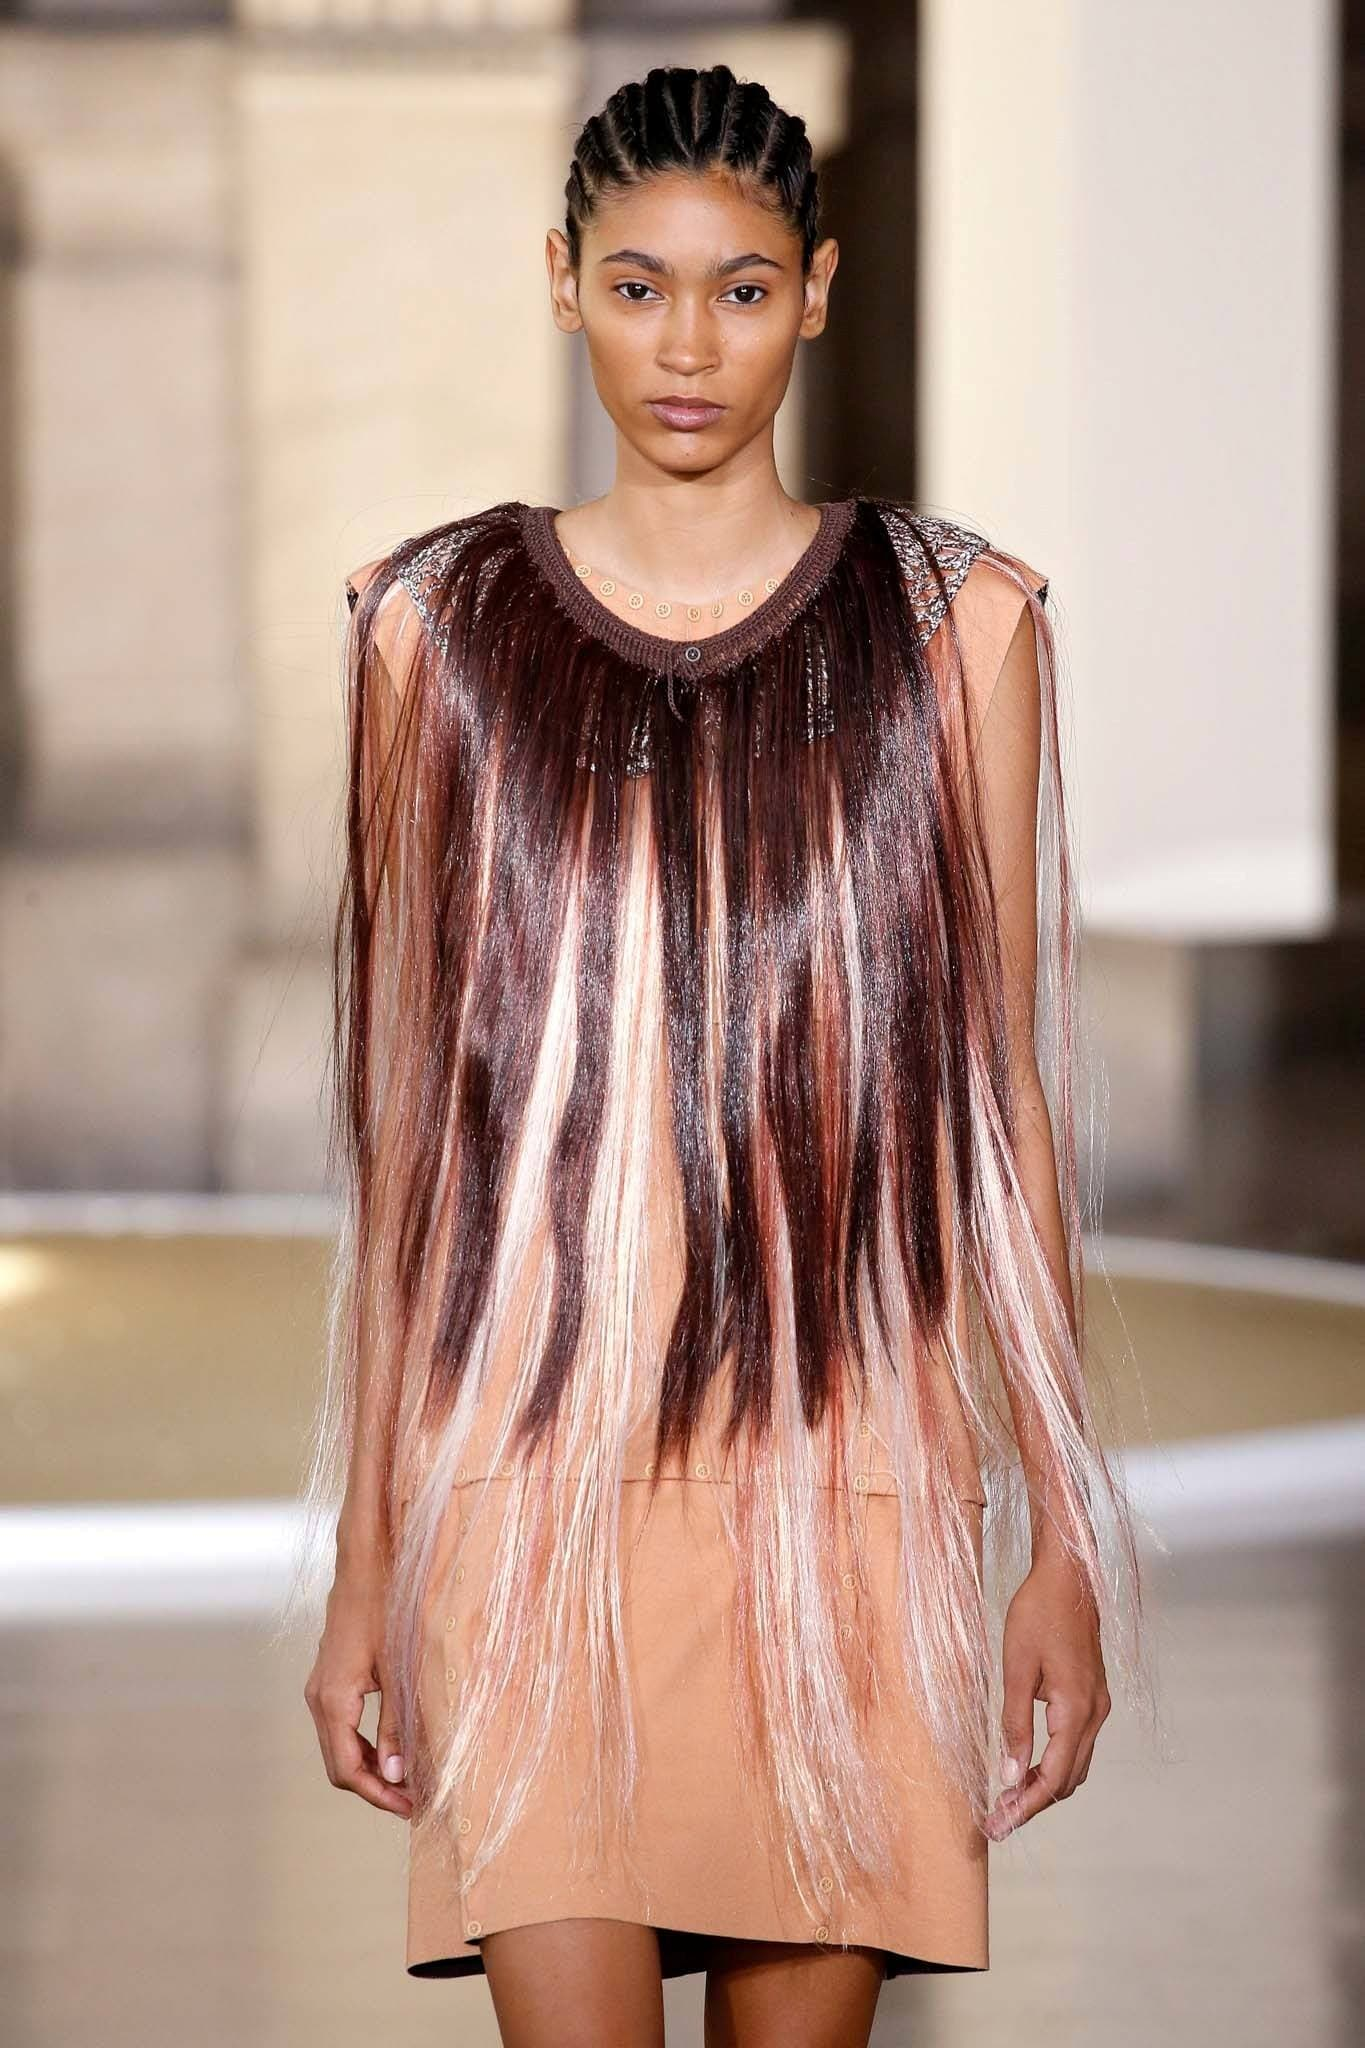 Paris fashion week haute couture model with cornrows hairstyle wearing a brown dress